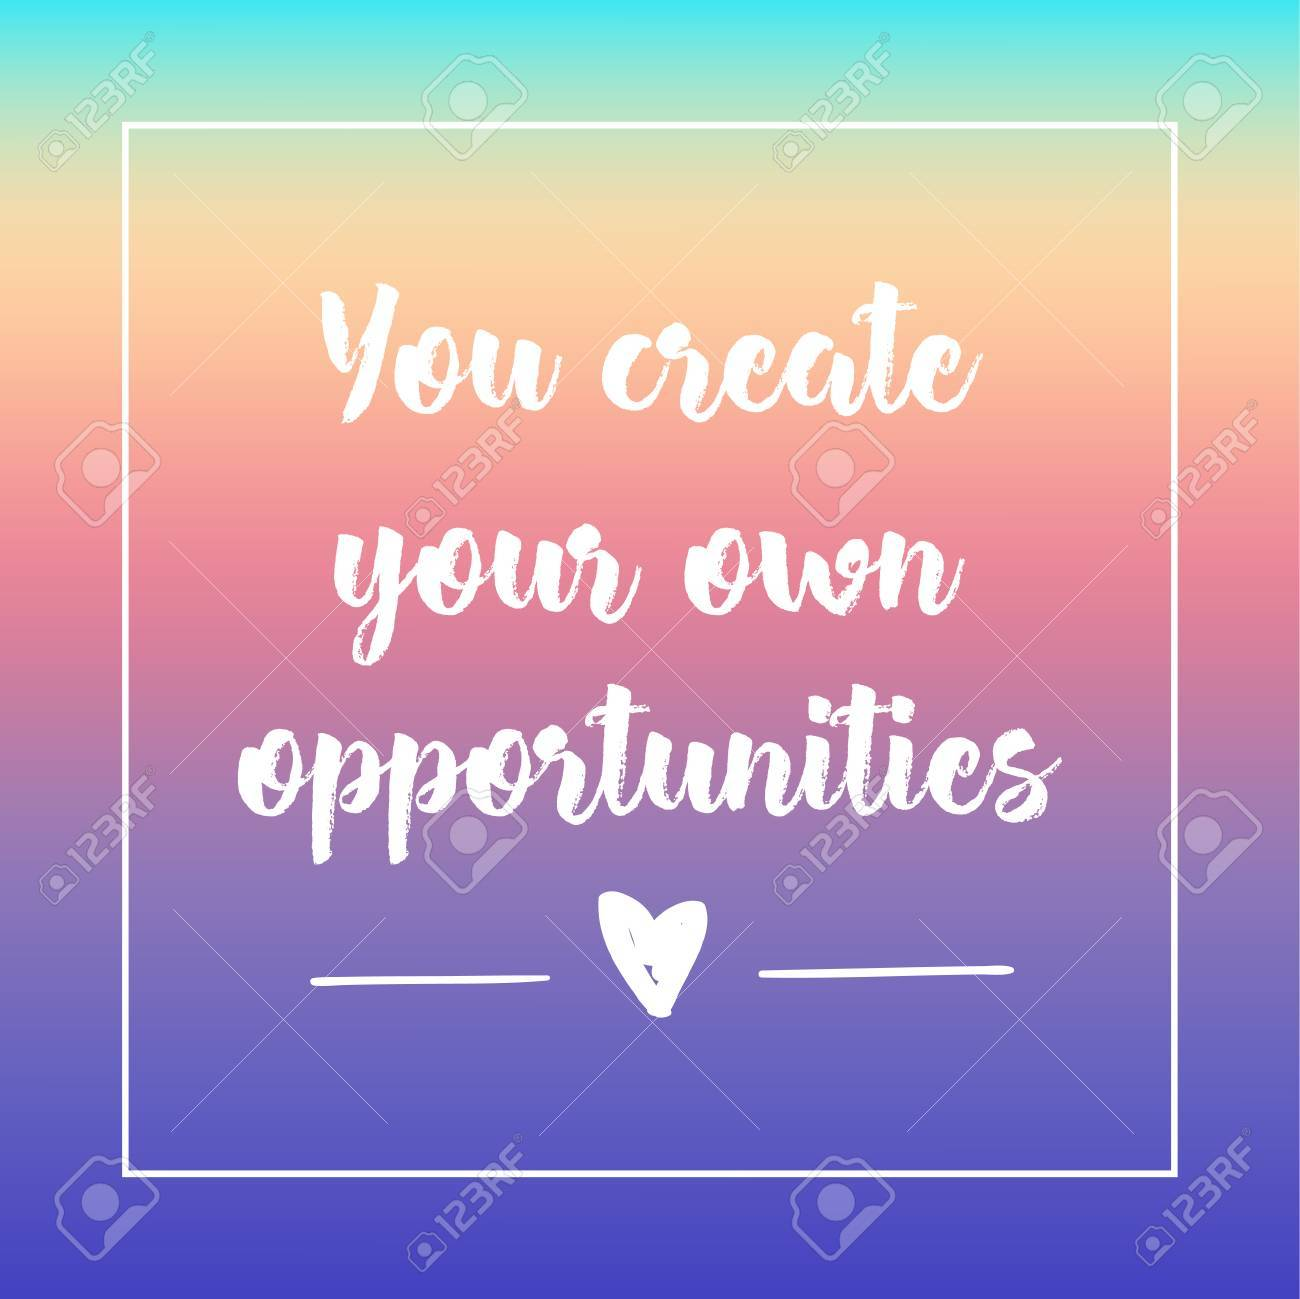 You Create Your Own Opportunities Inspirational Quote Motivation